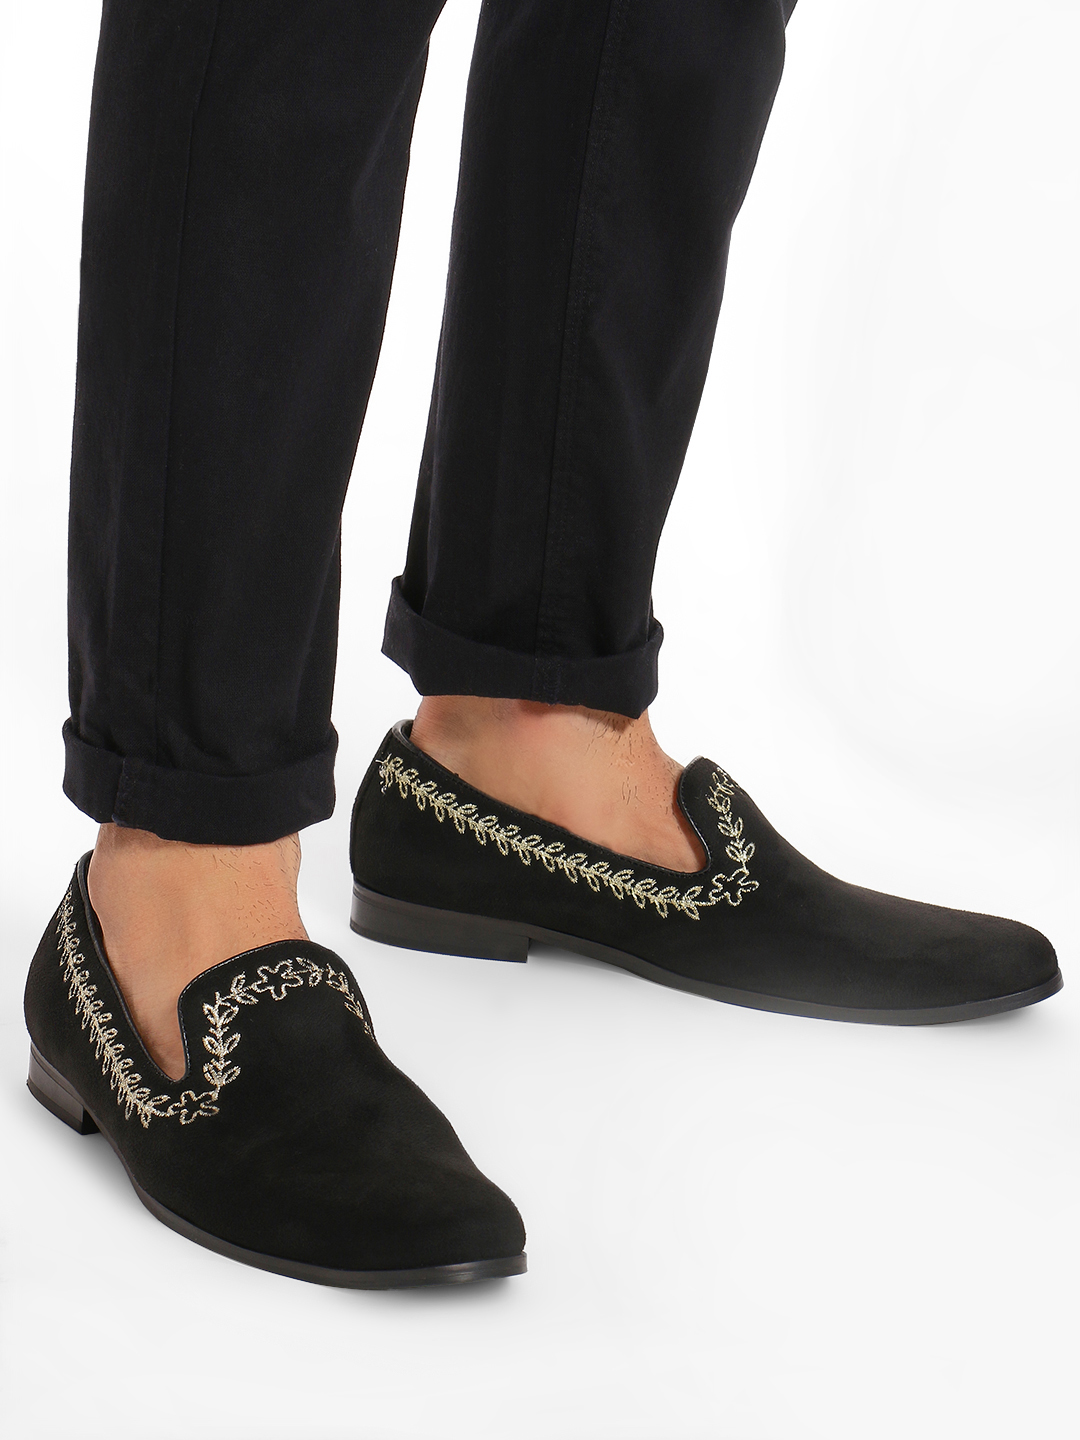 Griffin Black Leaf Embroidered Suede Loafers 1